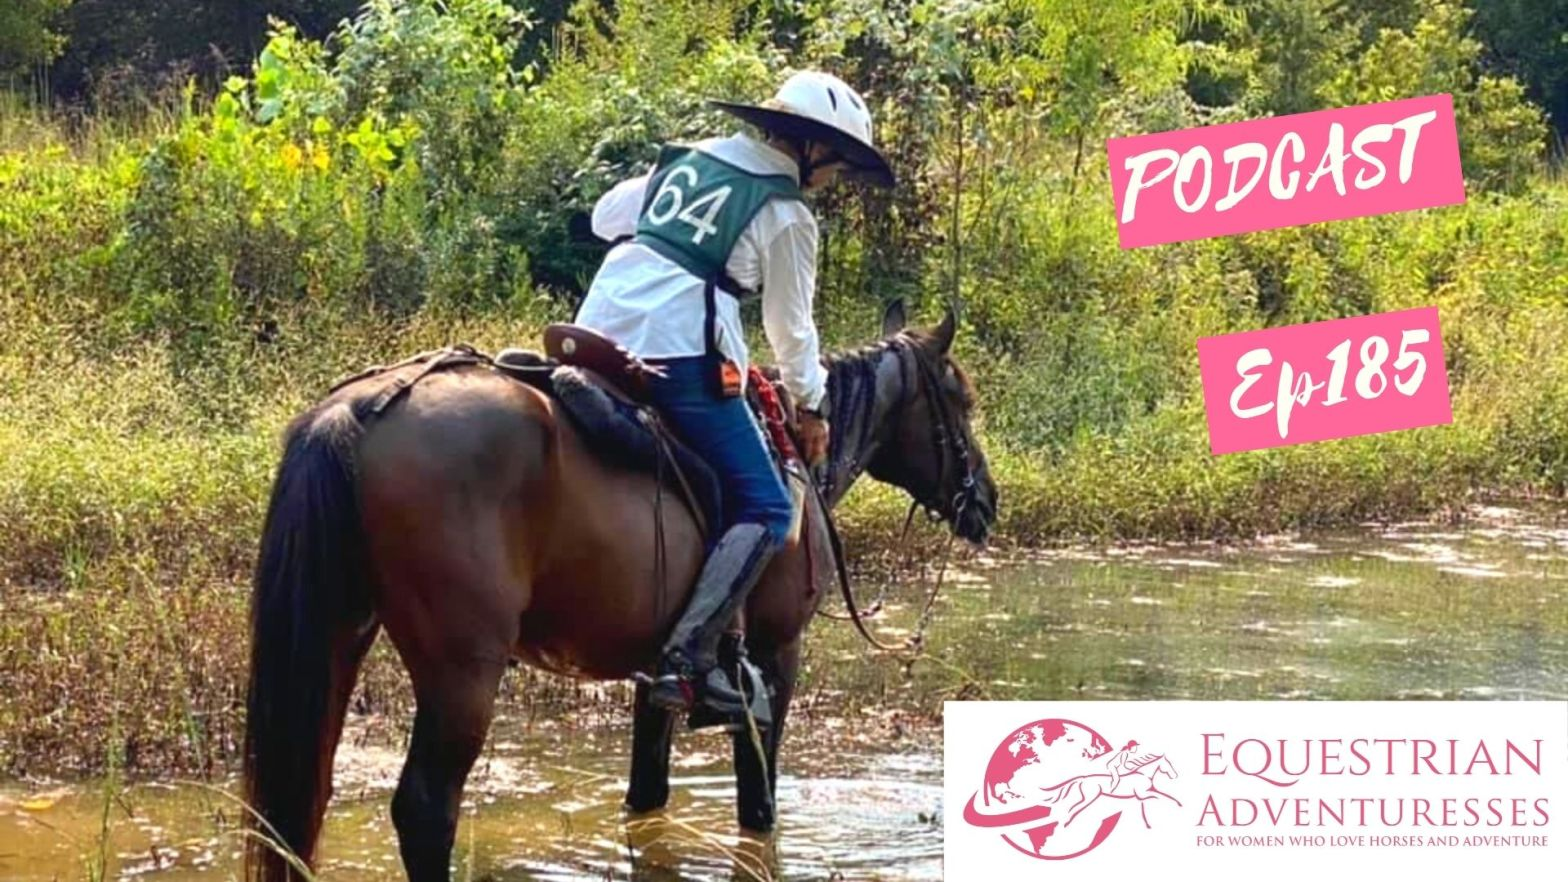 Equestrian Adventuresses Travel and Horse Podcast Ep 185 - Competitive Trail Riding